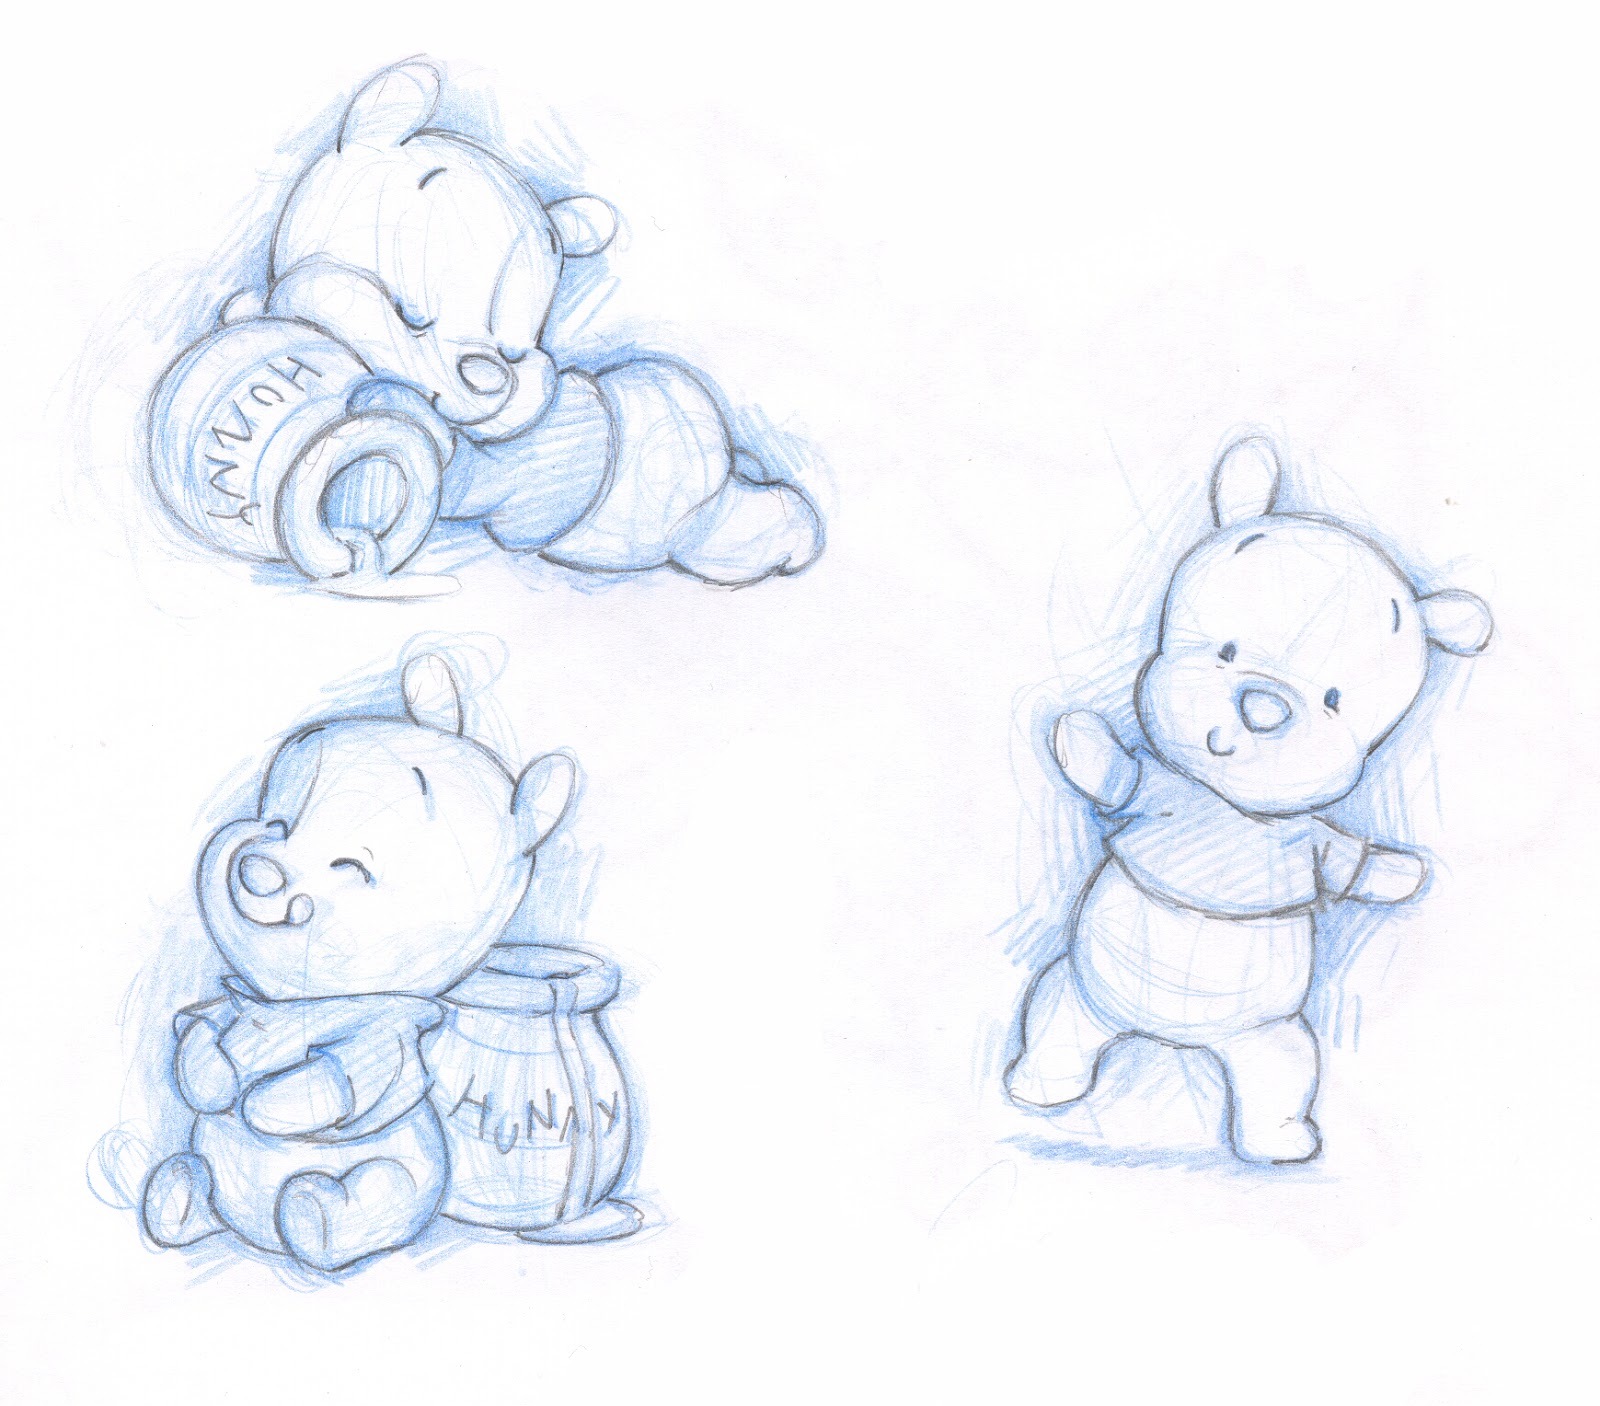 Shane Made Art: Baby Pooh and friends sketches